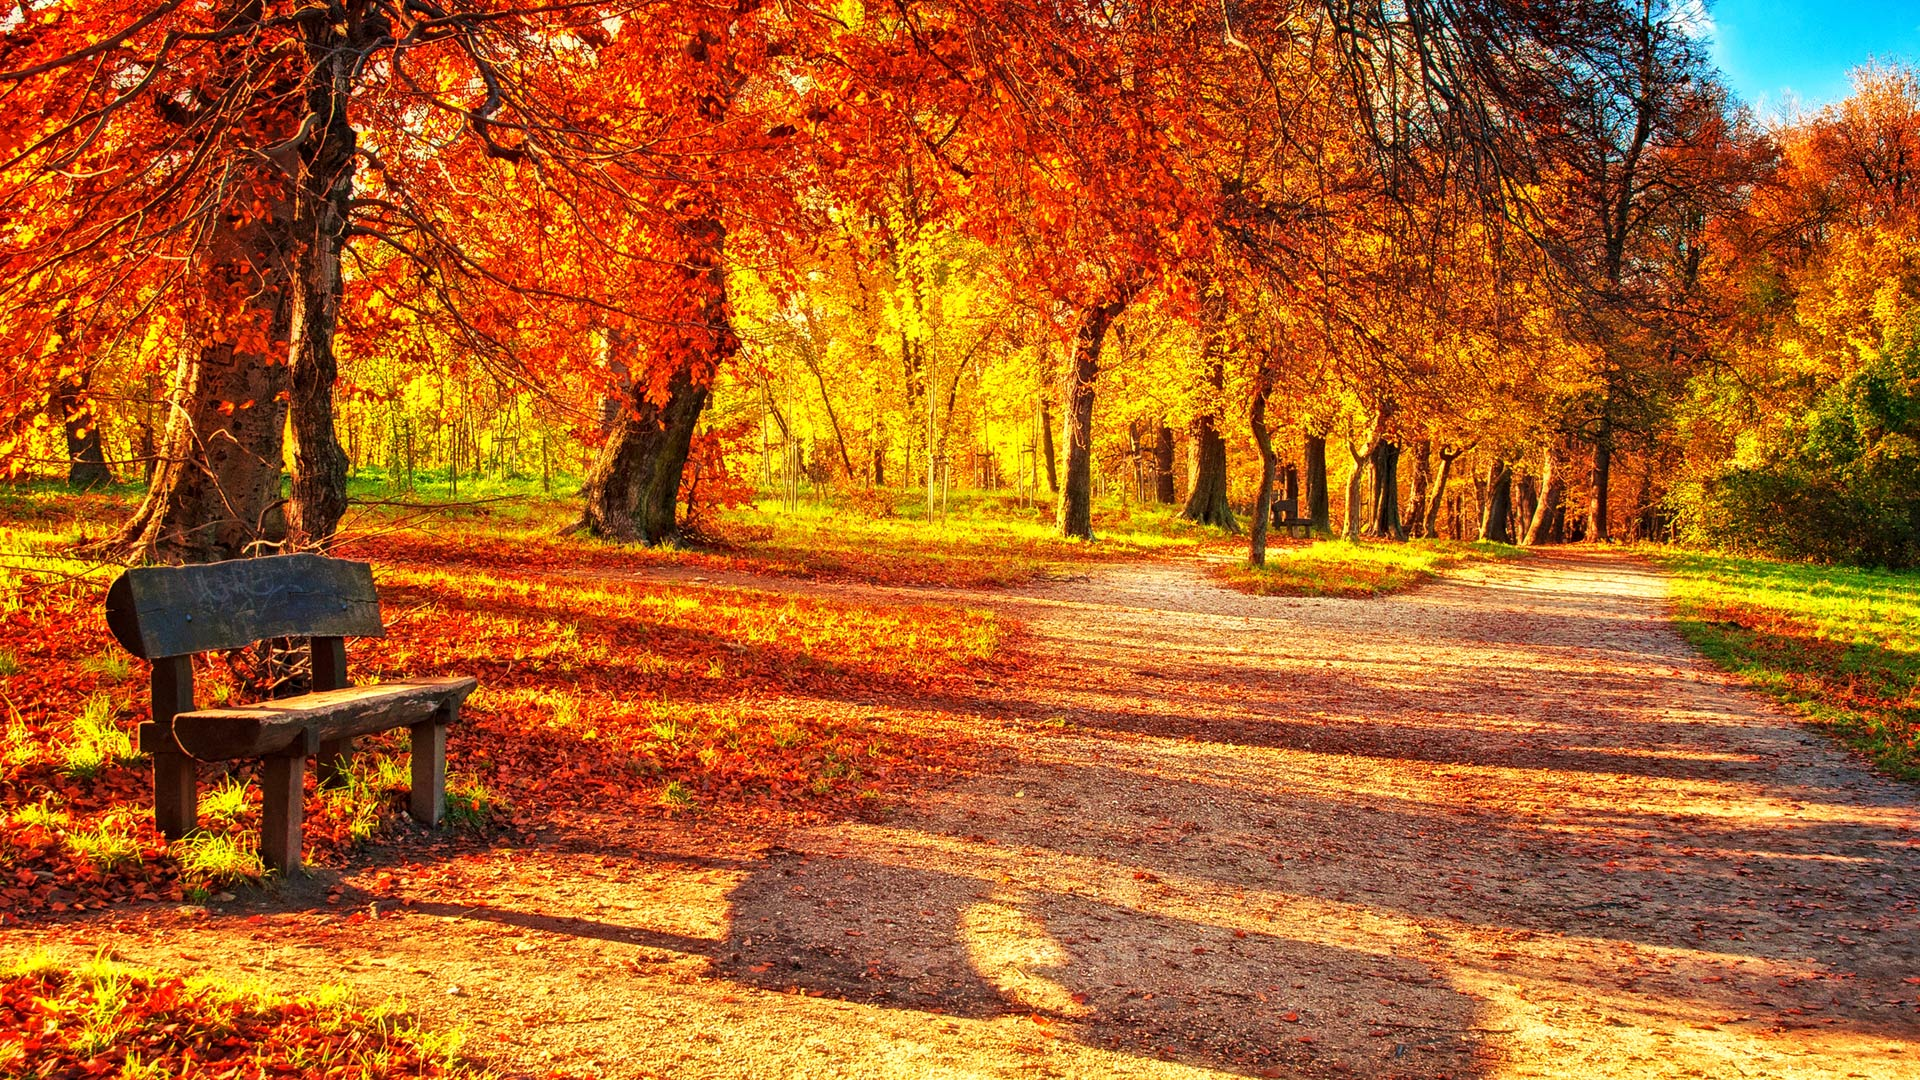 Wallpaper's Collection: «Autumn Leaves Wallpapers»